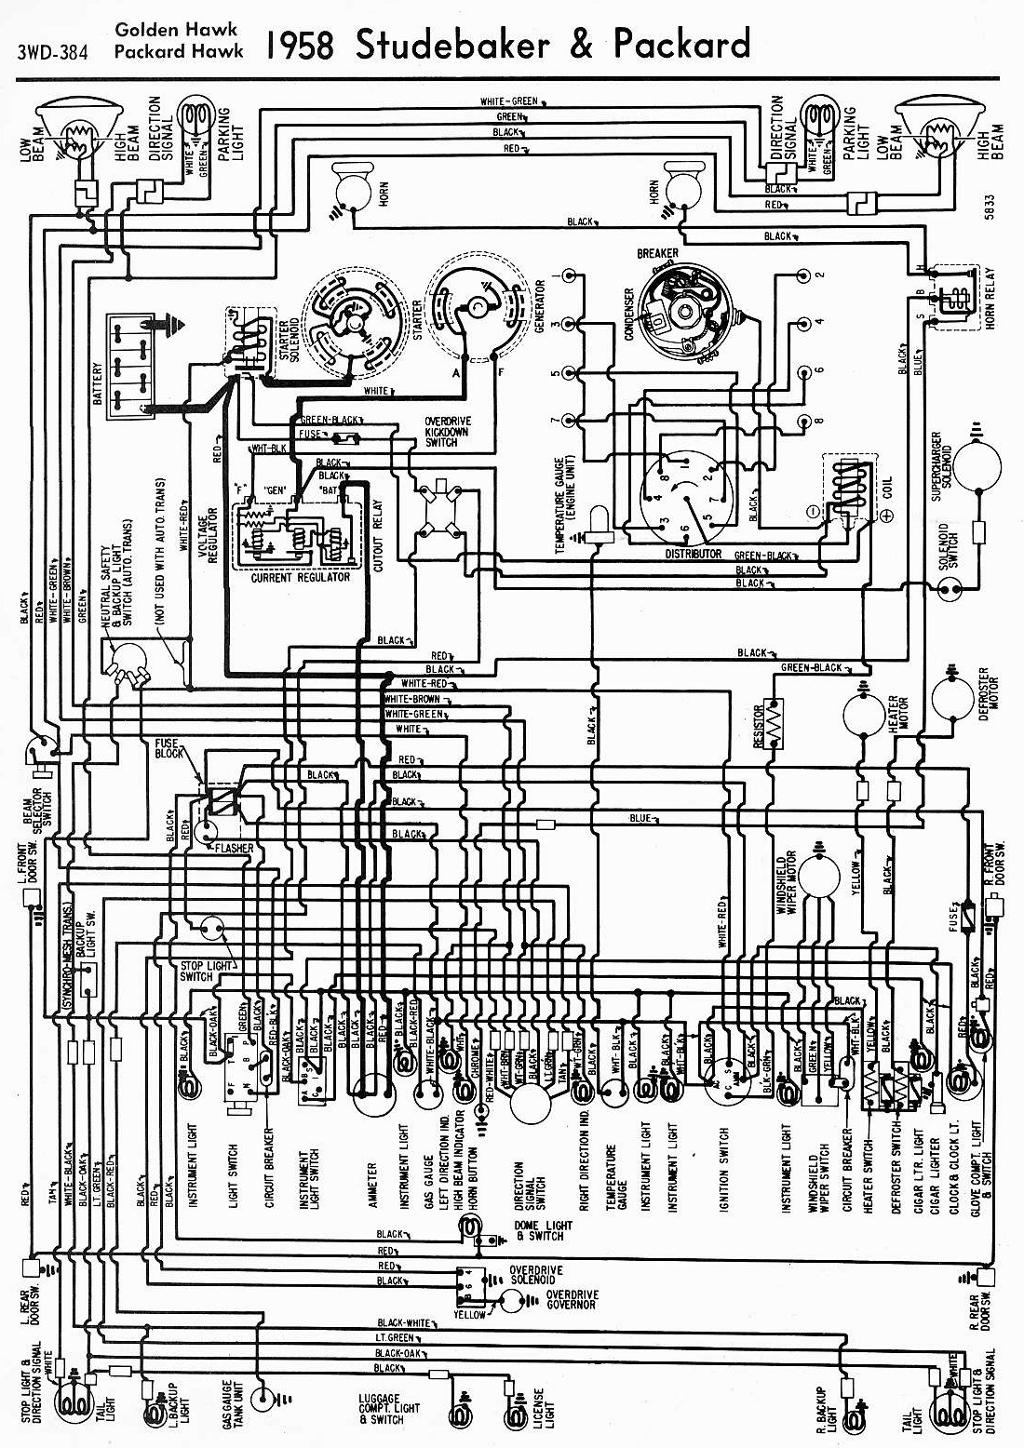 1947 packard wiring diagram wiring diagram database 1947 packard wiring diagram [ 1024 x 1448 Pixel ]